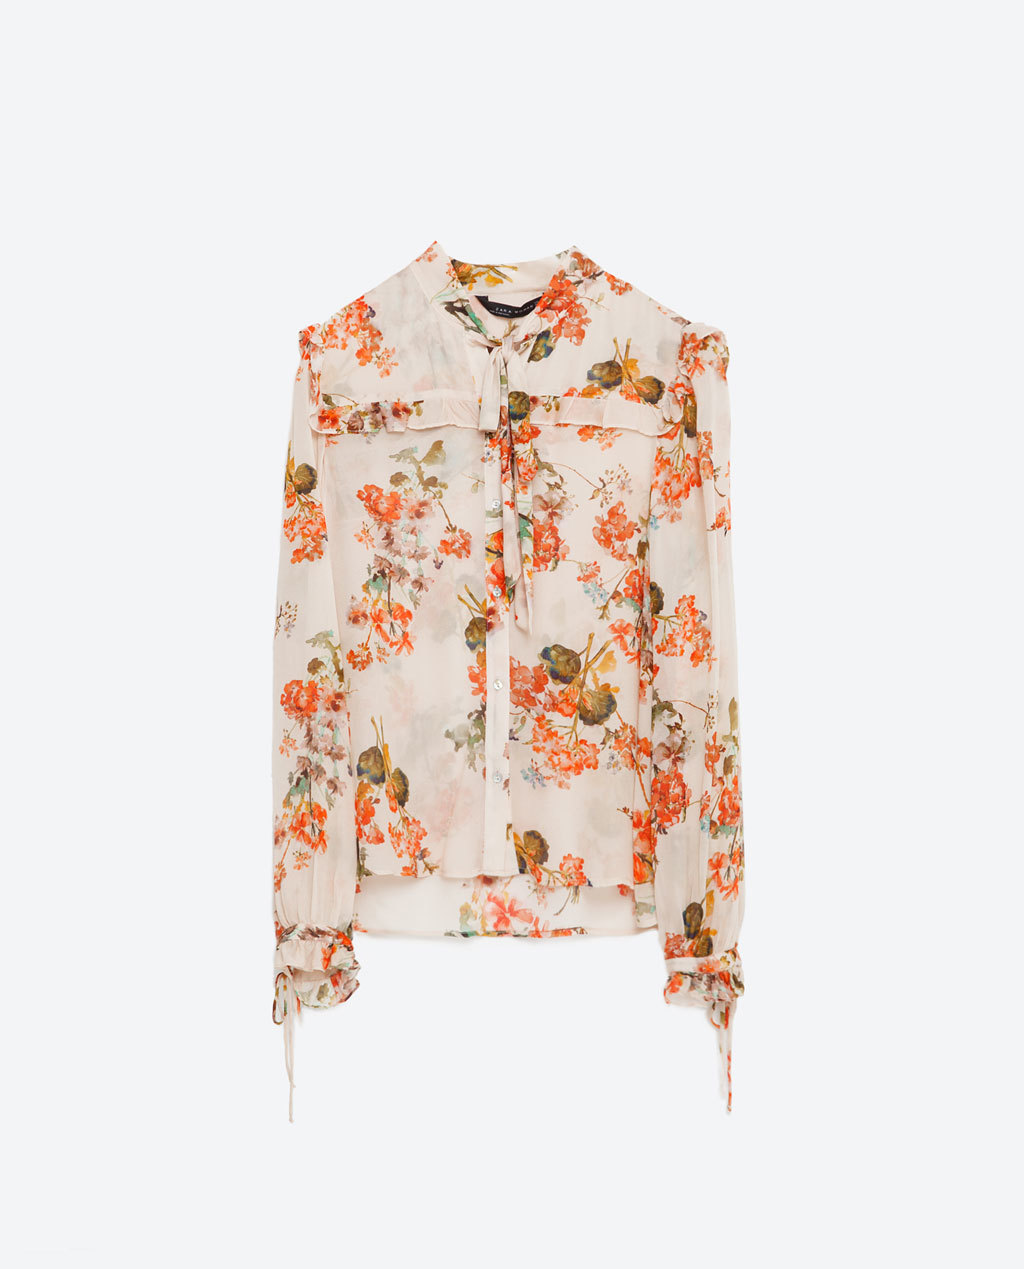 Printed Blouse - neckline: v-neck; style: blouse; predominant colour: ivory/cream; secondary colour: bright orange; occasions: casual; length: standard; fibres: viscose/rayon - 100%; fit: body skimming; sleeve length: long sleeve; sleeve style: standard; texture group: sheer fabrics/chiffon/organza etc.; pattern type: fabric; pattern: florals; multicoloured: multicoloured; season: s/s 2016; wardrobe: highlight